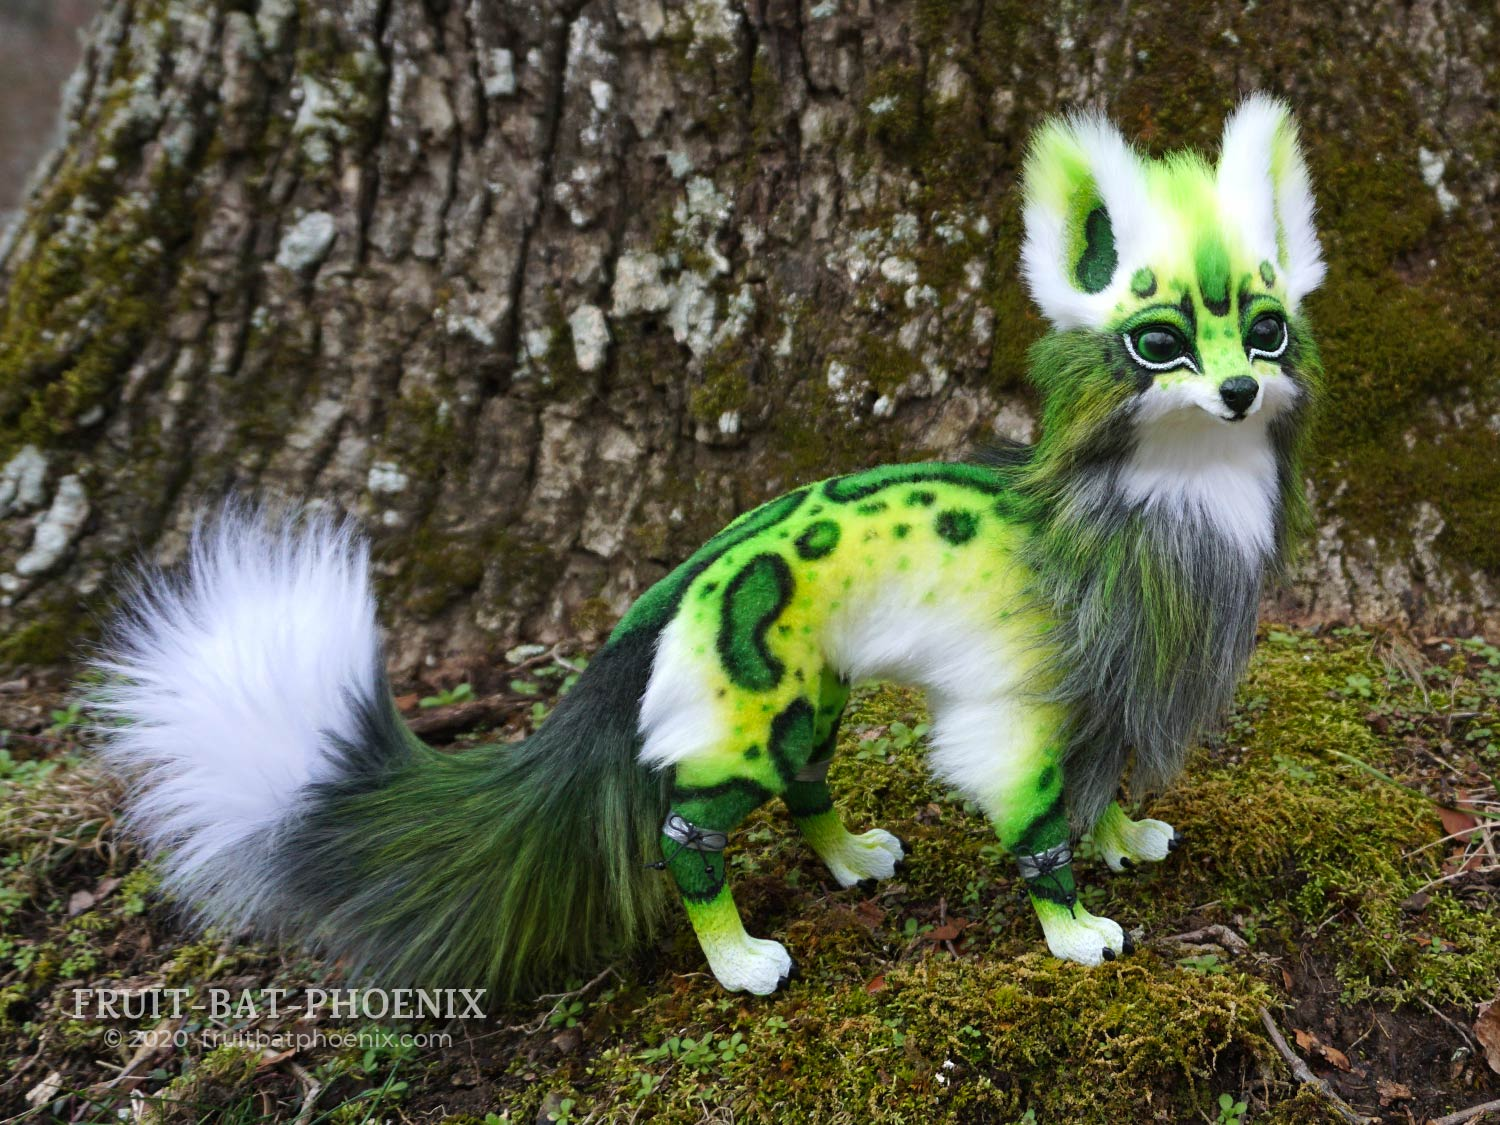 Chlorophyll Fox, a green spotted posable fox creature art doll